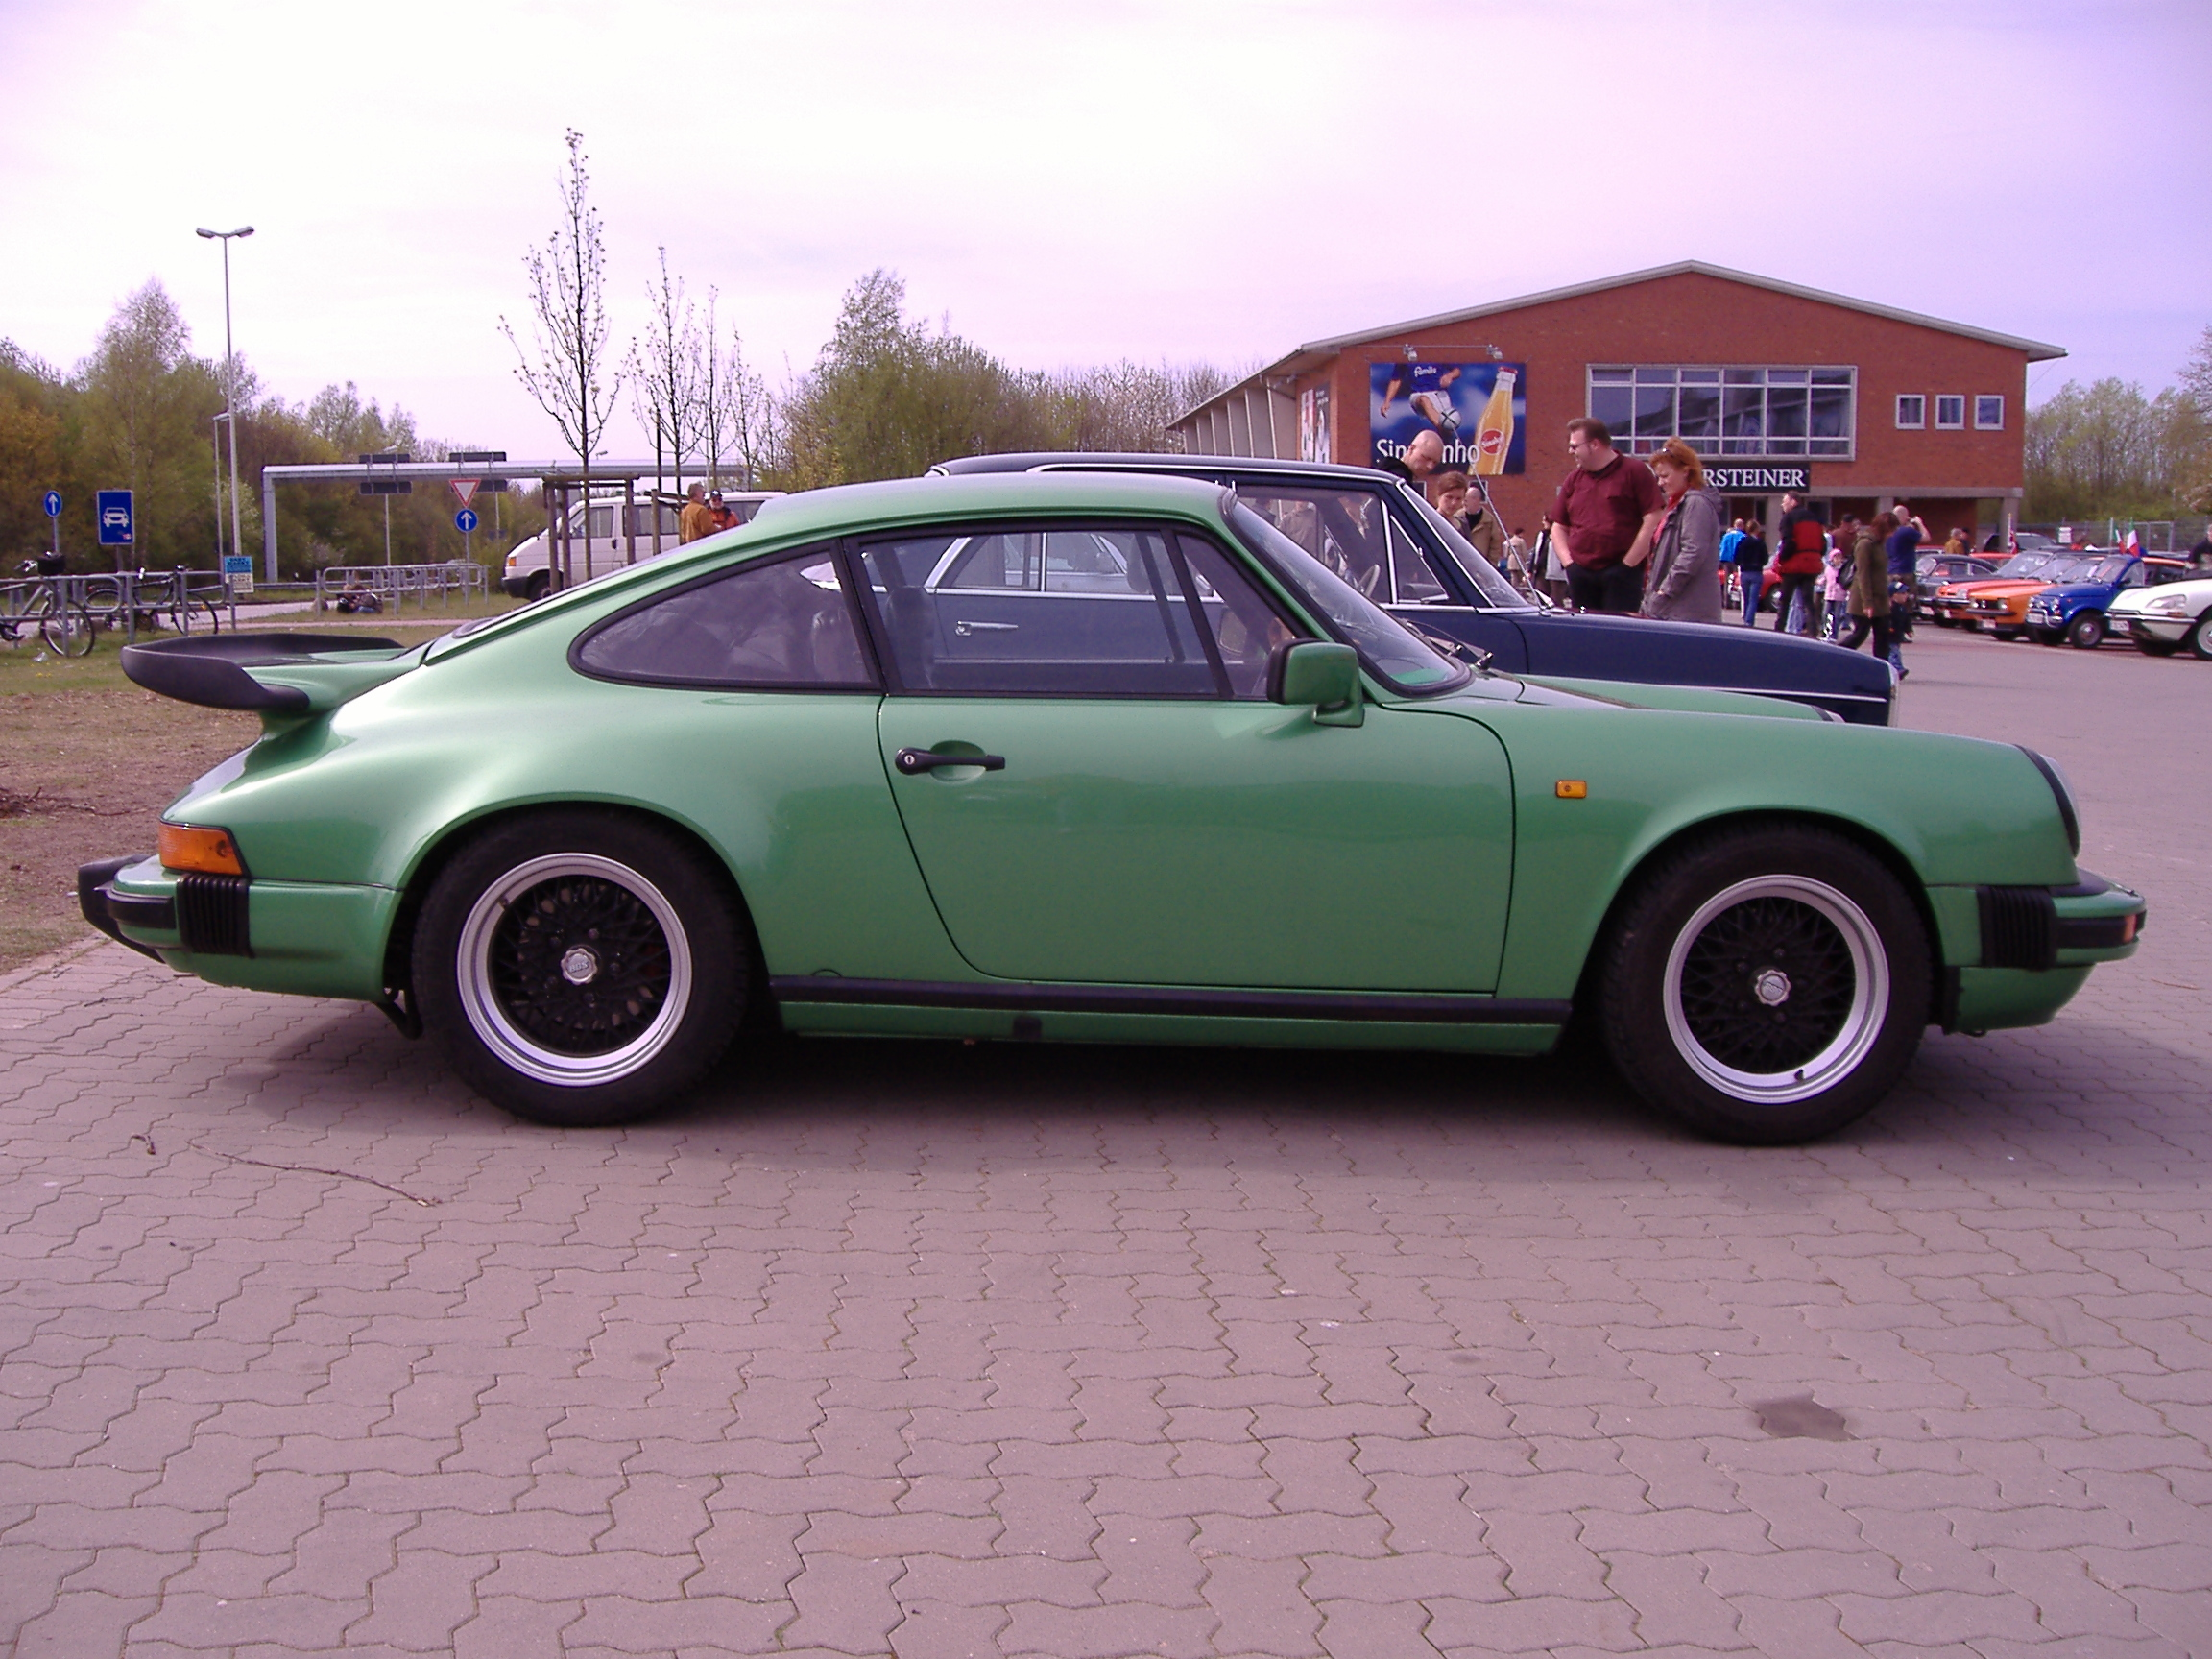 File P911 Turbo Green Sideview Jpg Wikimedia Commons